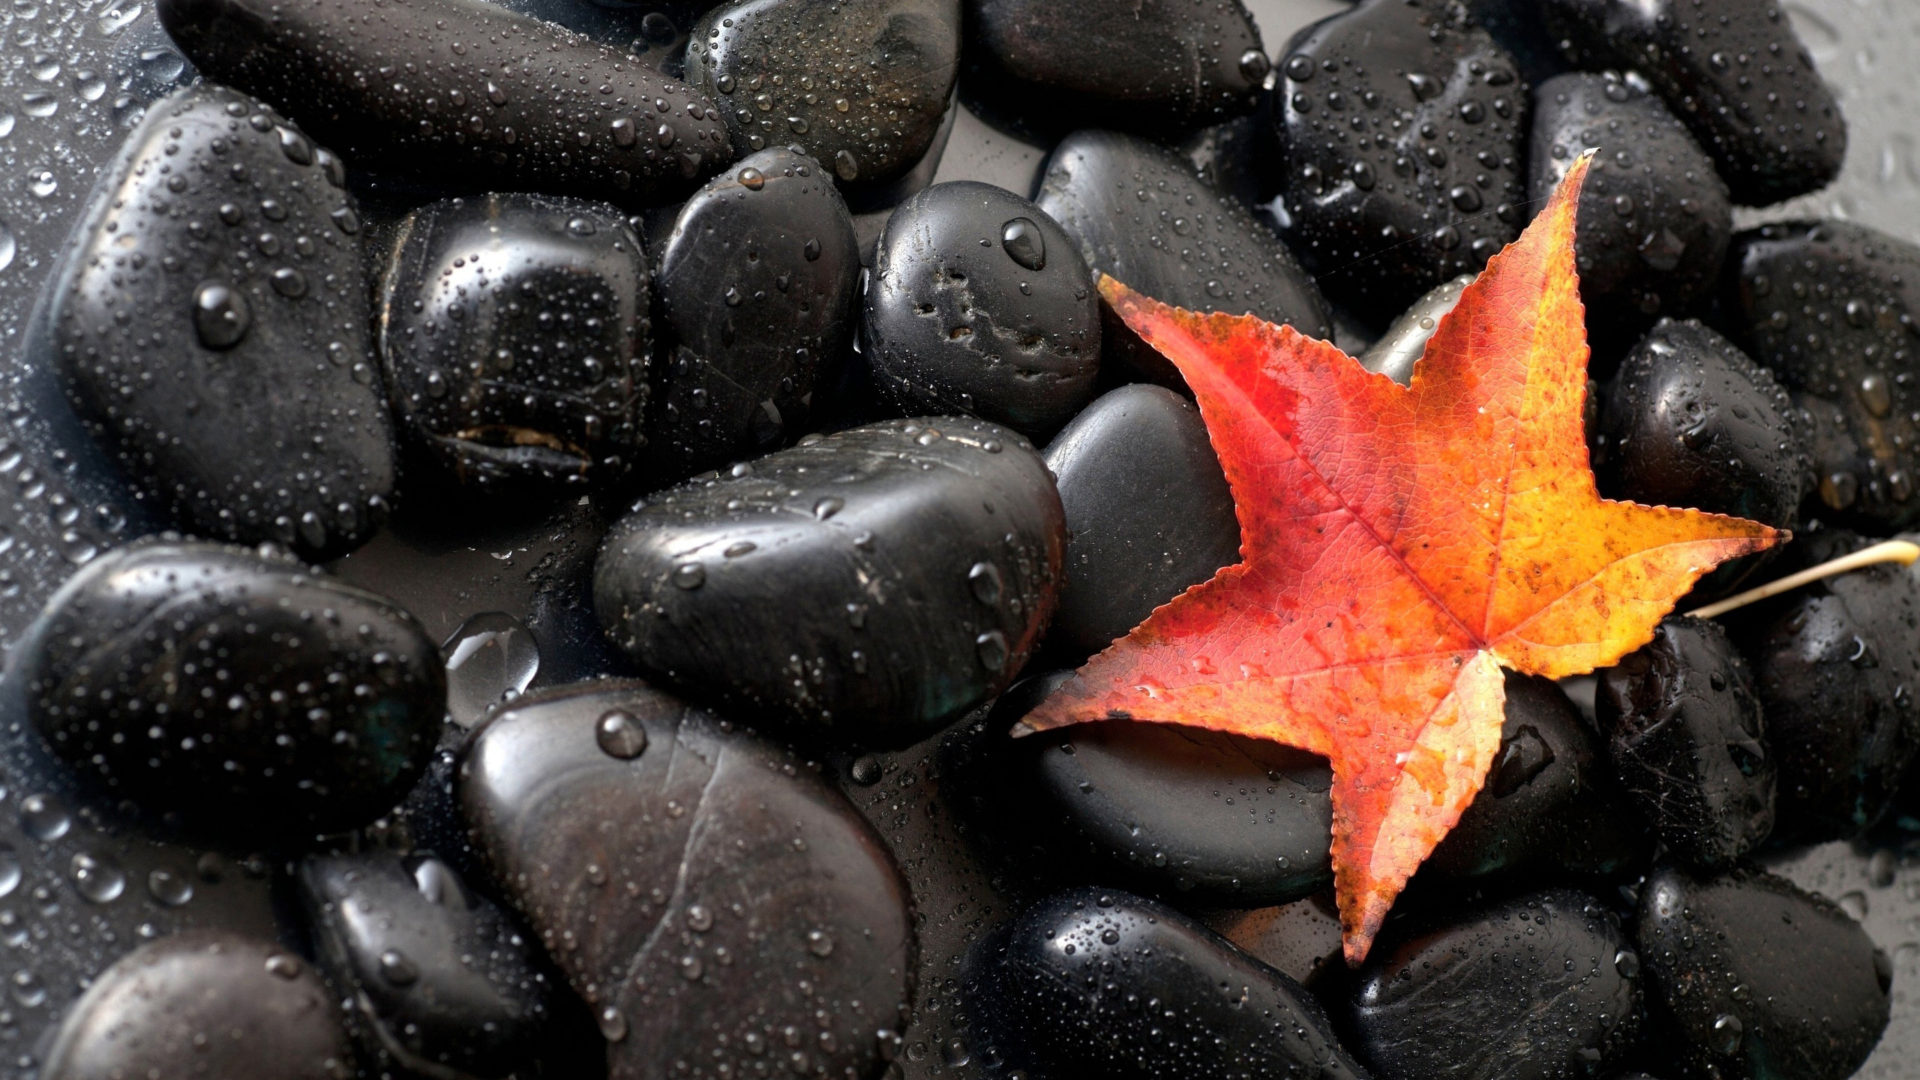 Fall Themed Computer Wallpaper Gorgeous Black Stones Red Autumn Leaf Hd Desktop Wallpaper